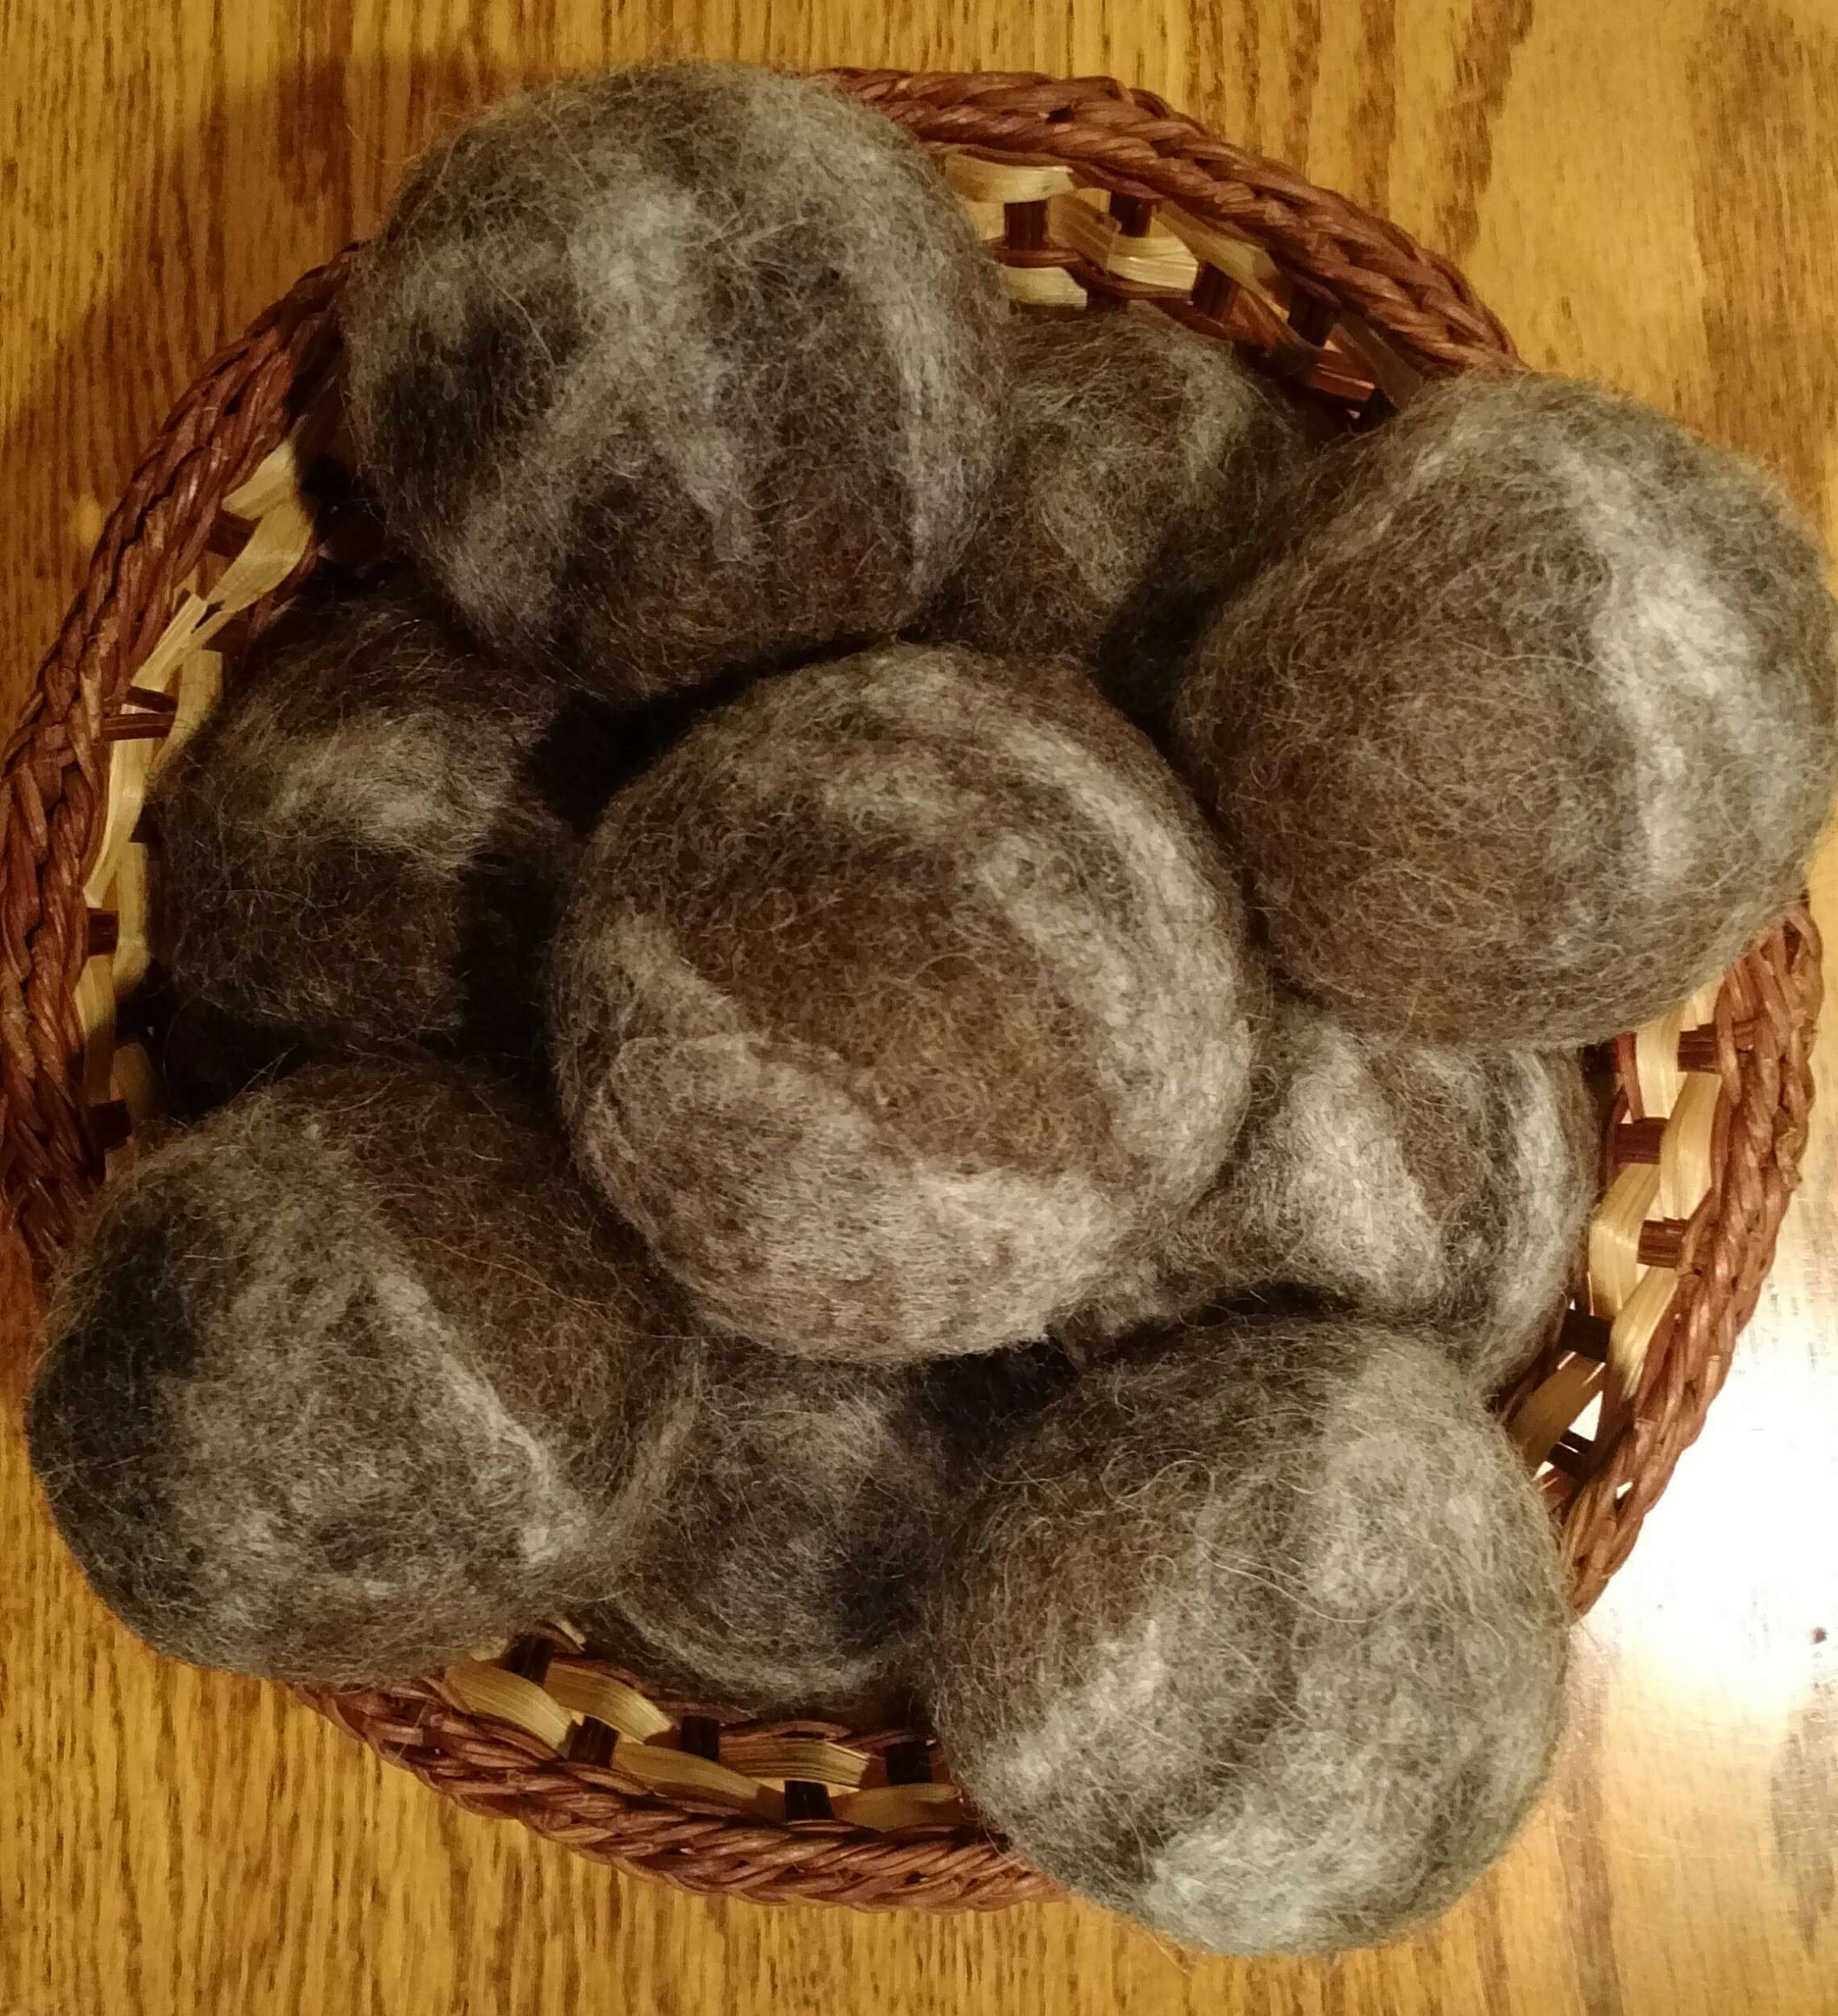 RLAWDRBLS RLAWDRBL3 Dryer balls single or 3 for $15